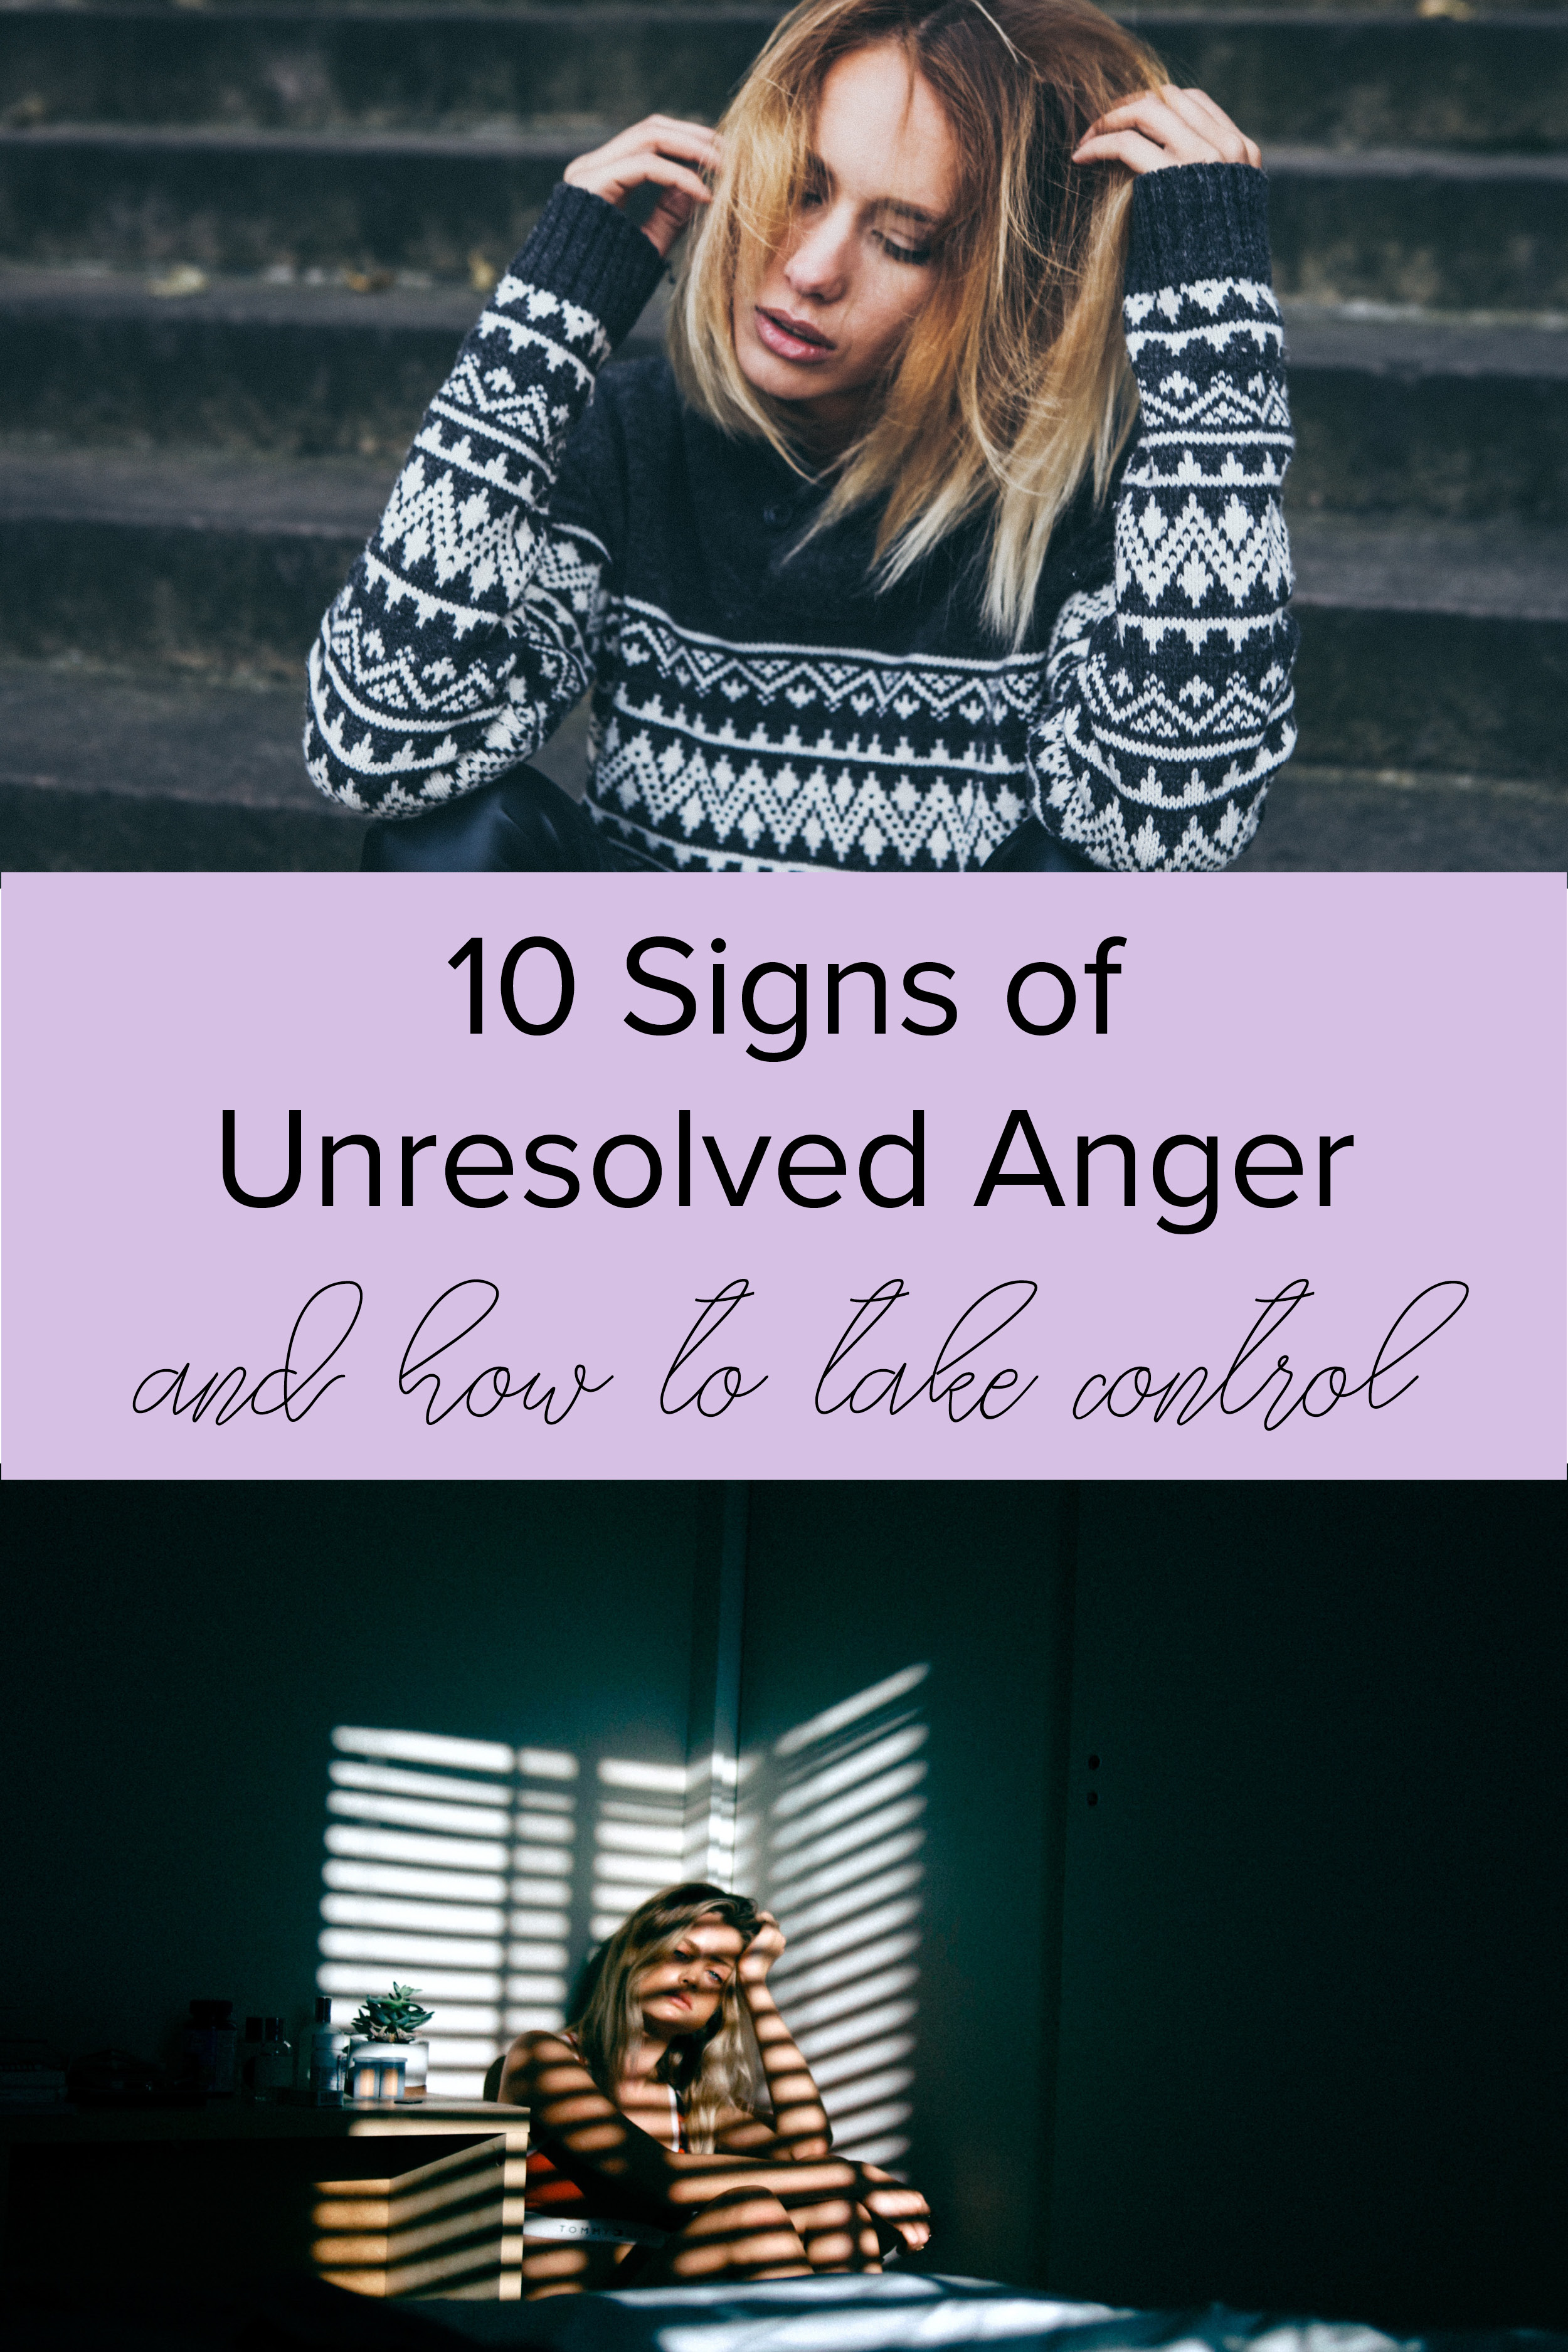 10 SIGNS OF UNRESOLVED ANGER: and how to take control